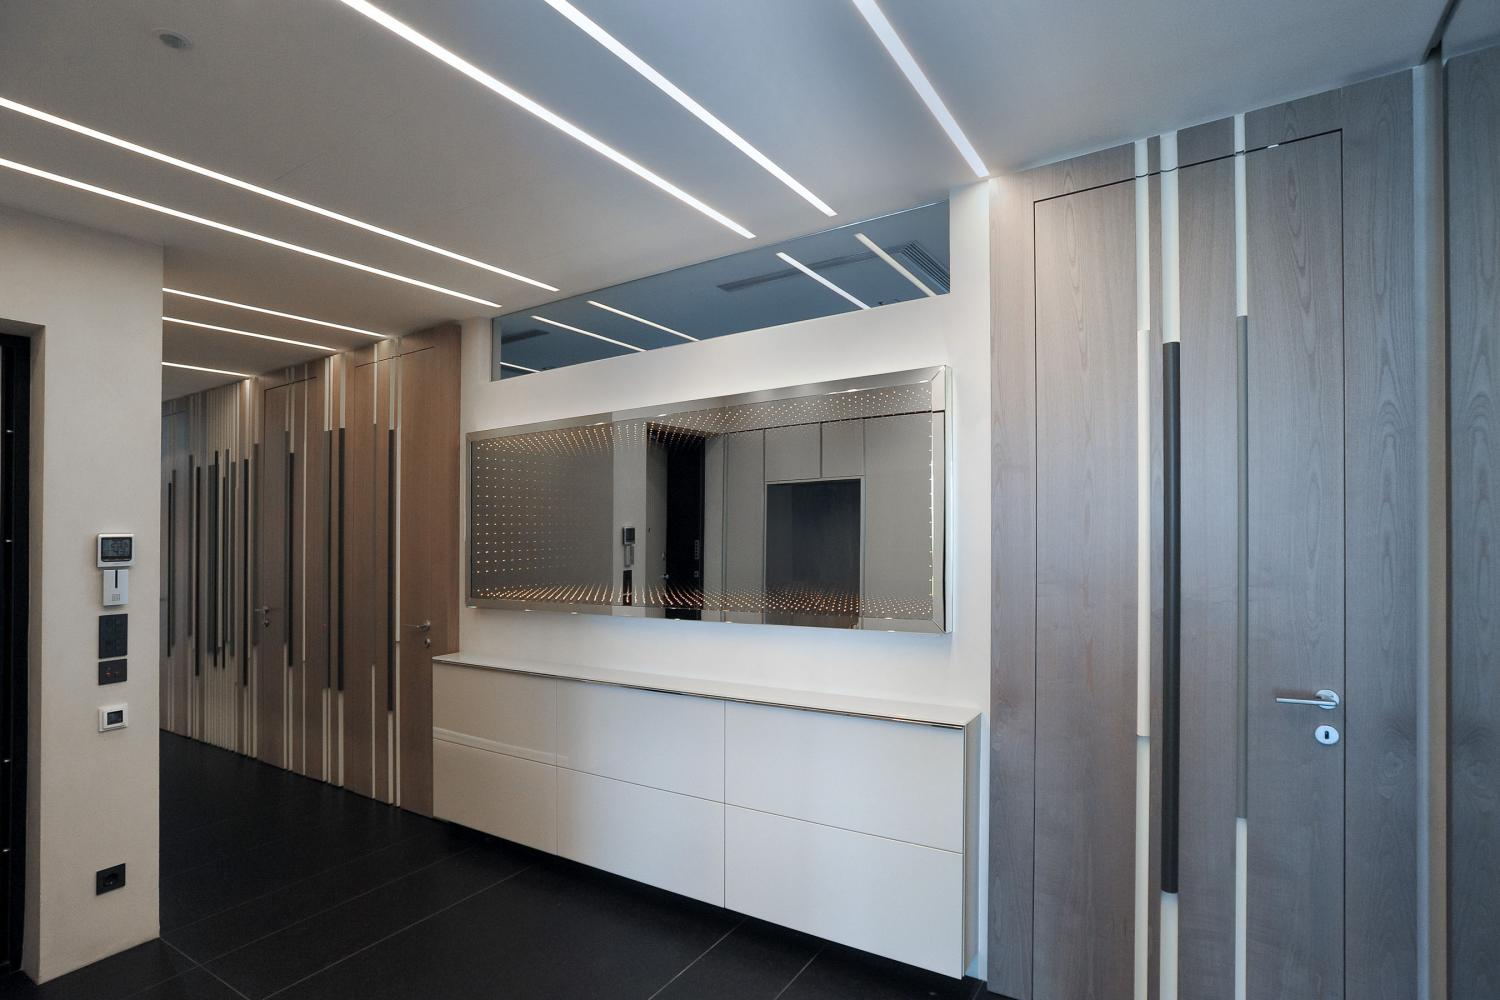 Bamboo wall panels and doors by Laurameroni in a luxury modern flat interior design in moscow